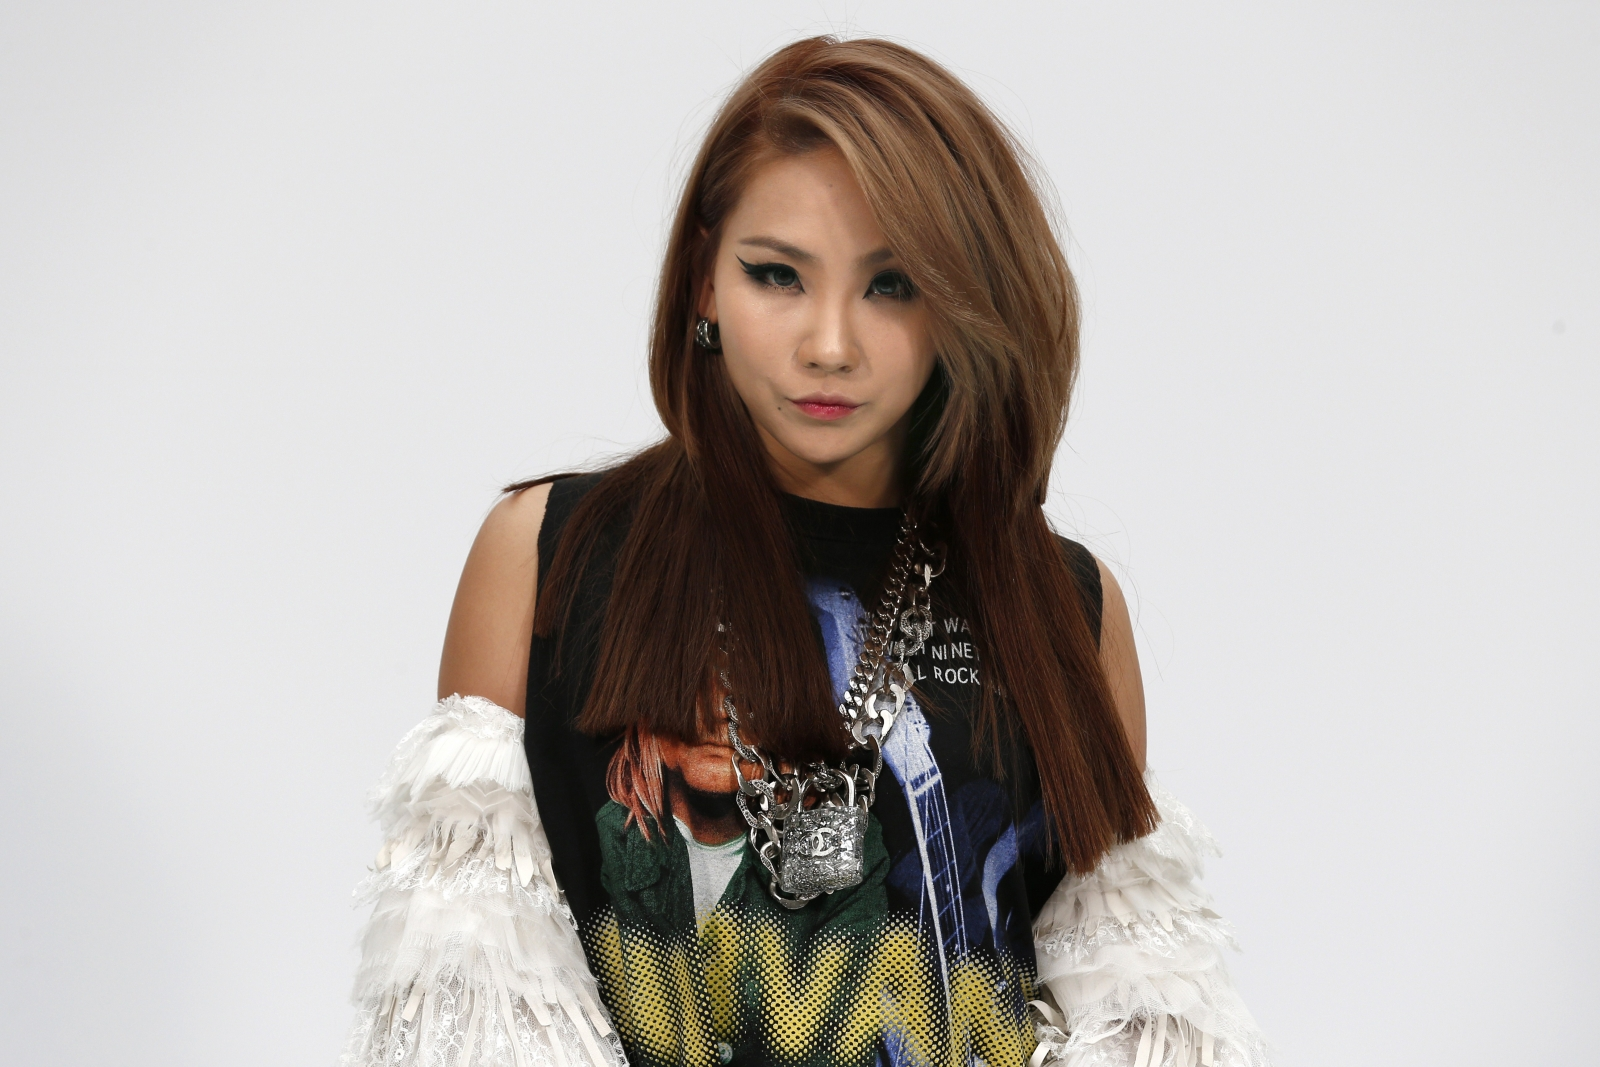 South Korean K-Pop singer CL from 2NE1